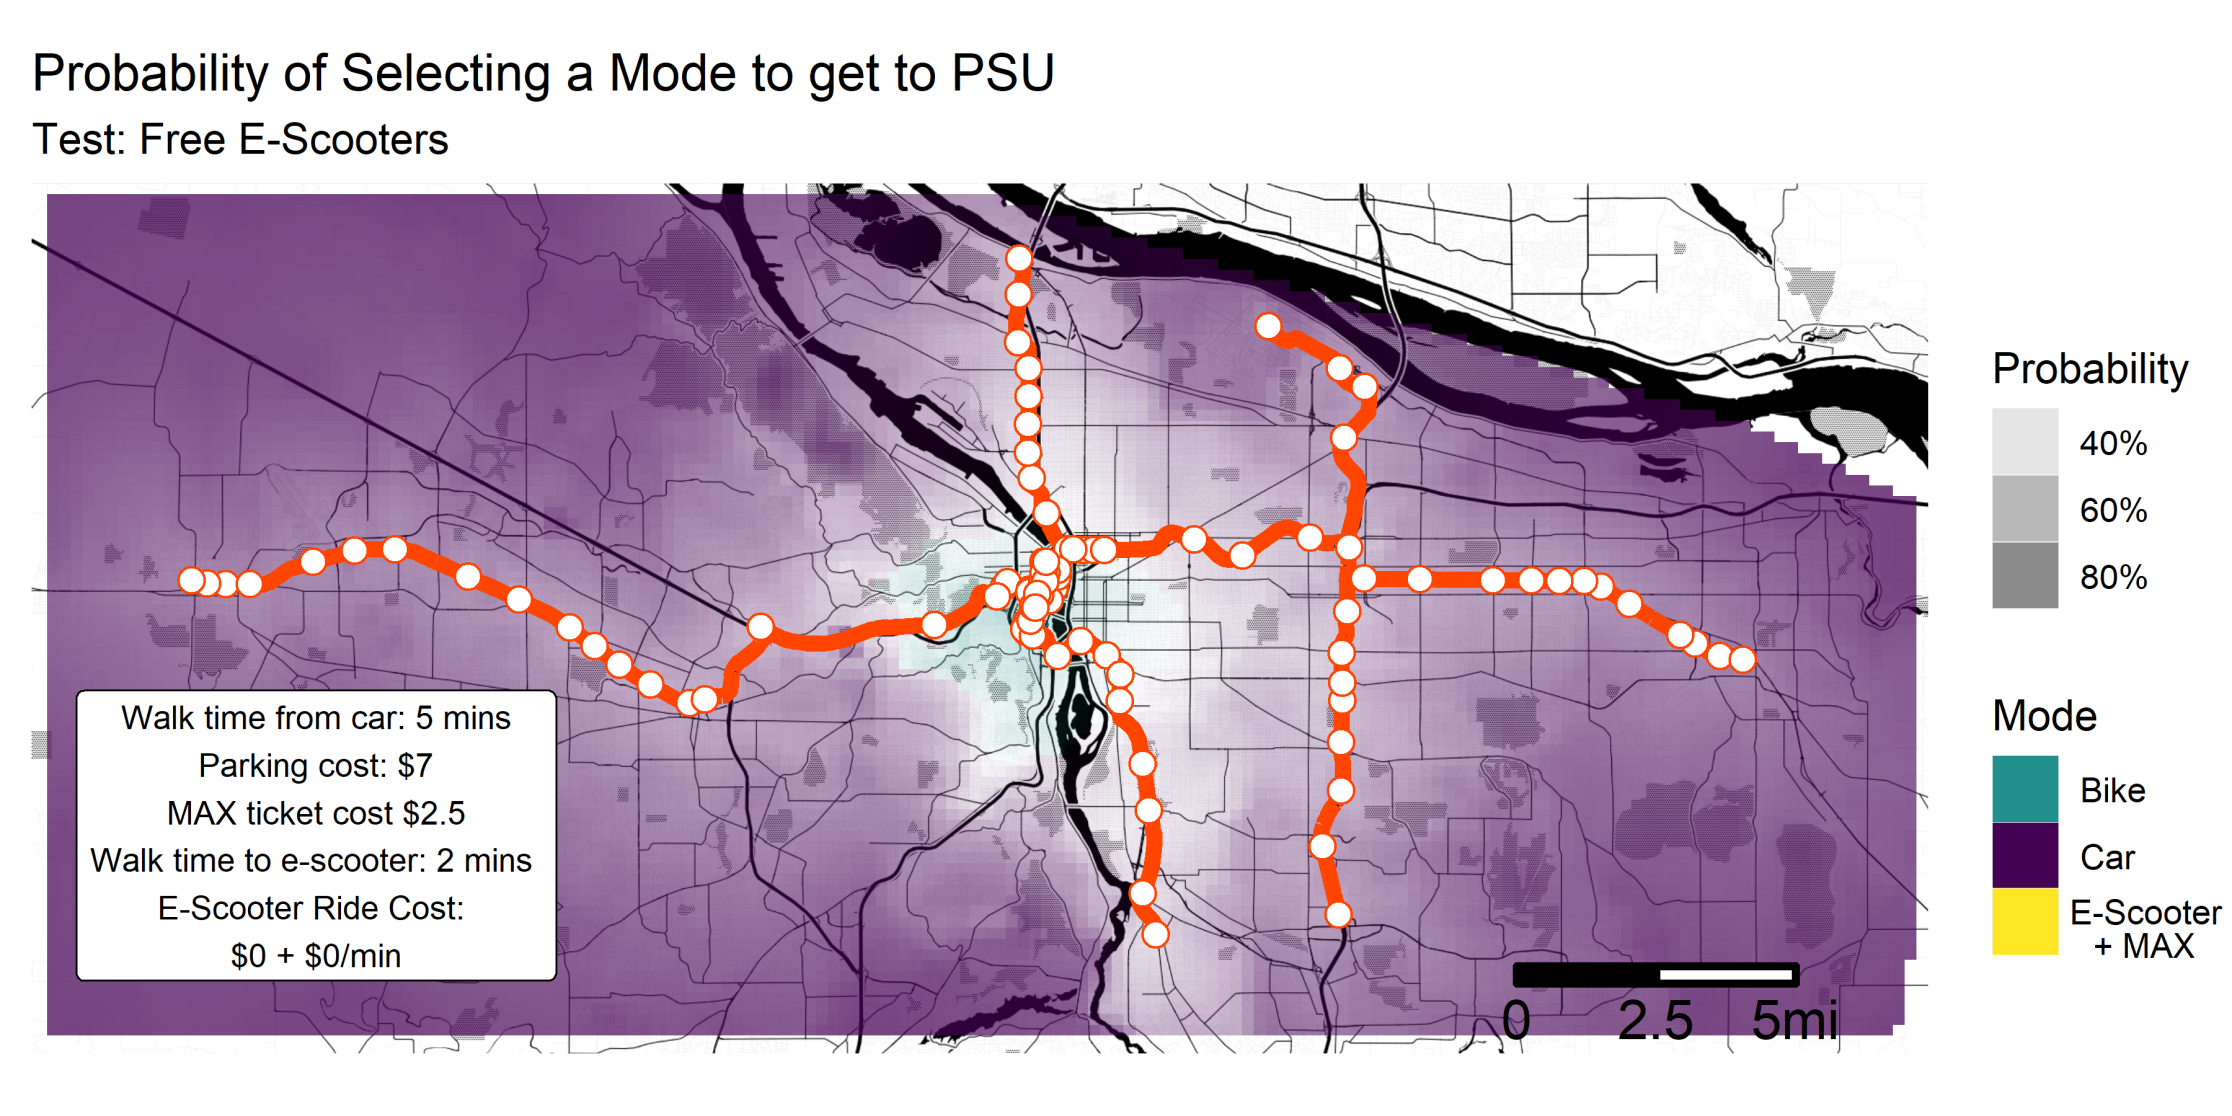 Probability of selecting a mode to get to PSU, if e-scooters were free. This map shows that there is still no place in the metro area where using e-scooter + MAX is the most preferable mode choice.